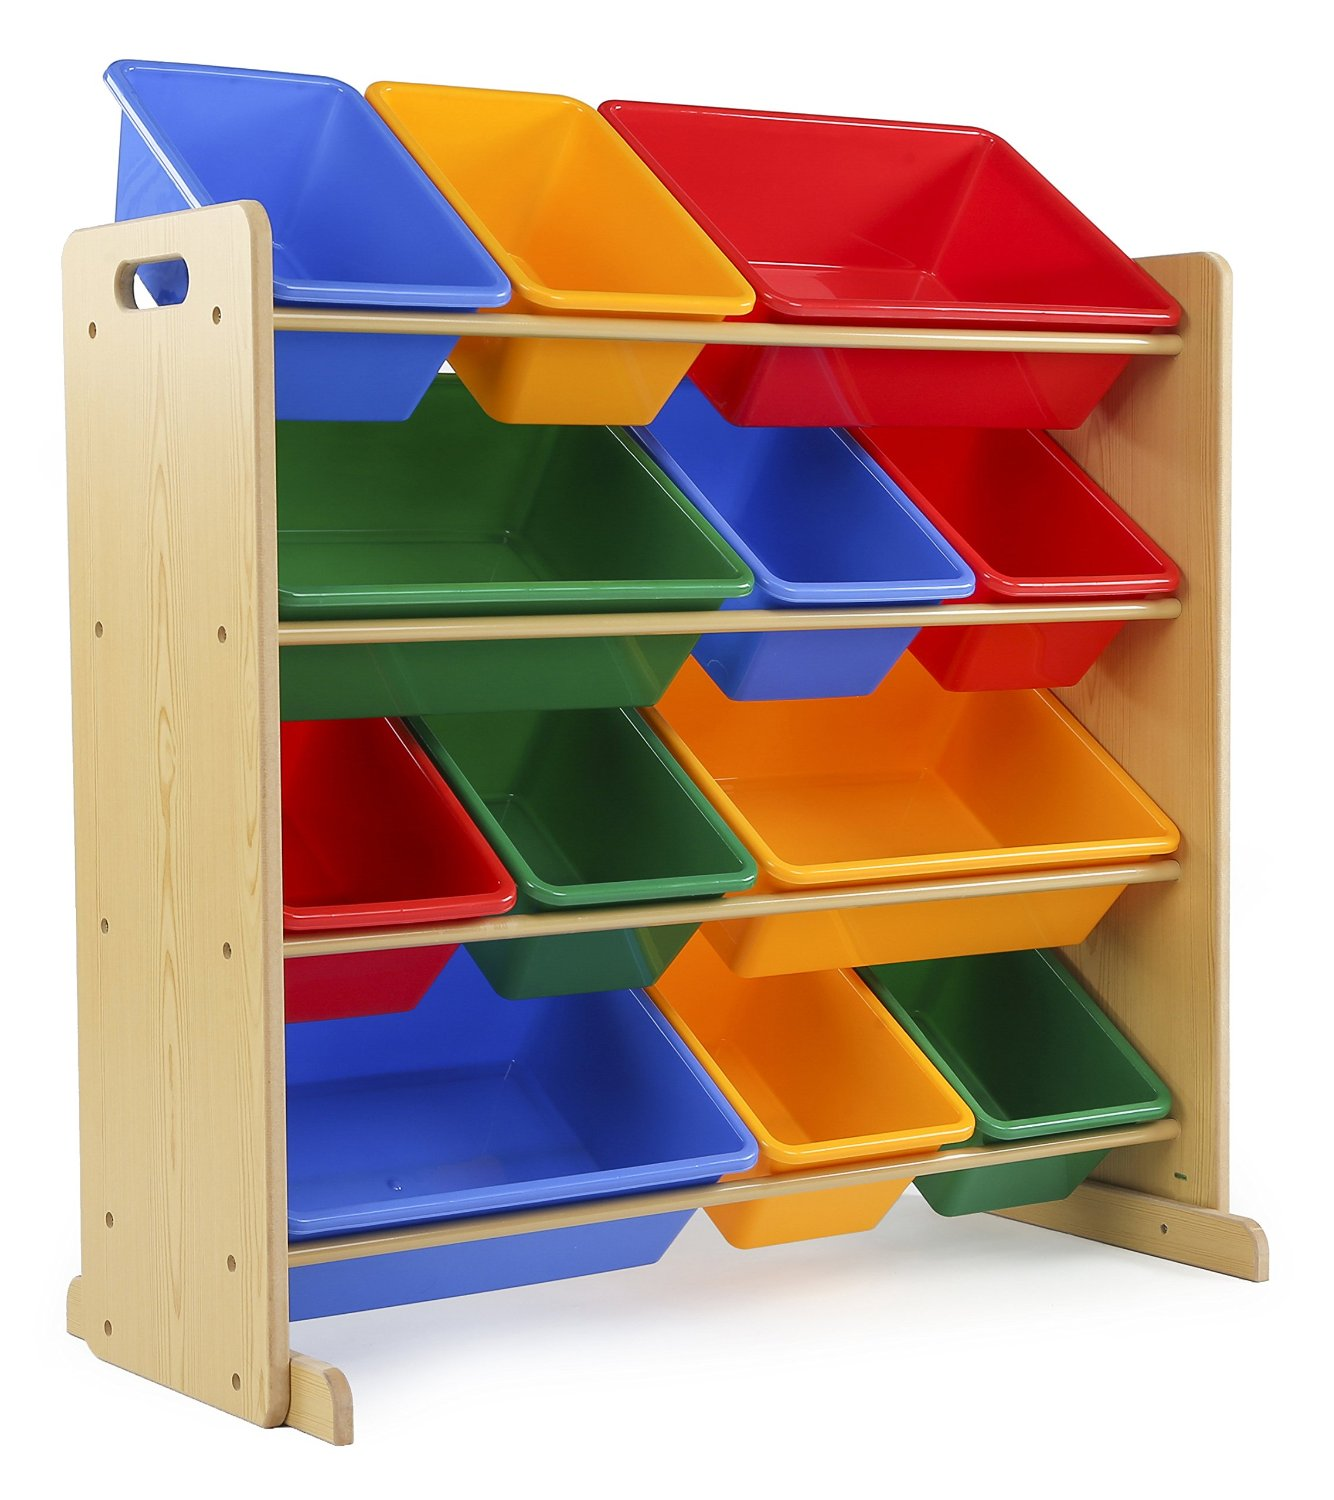 Tot Tutors Kidsu0027 Toy Storage Organizer With 12 Plastic Bins Only $33.53!